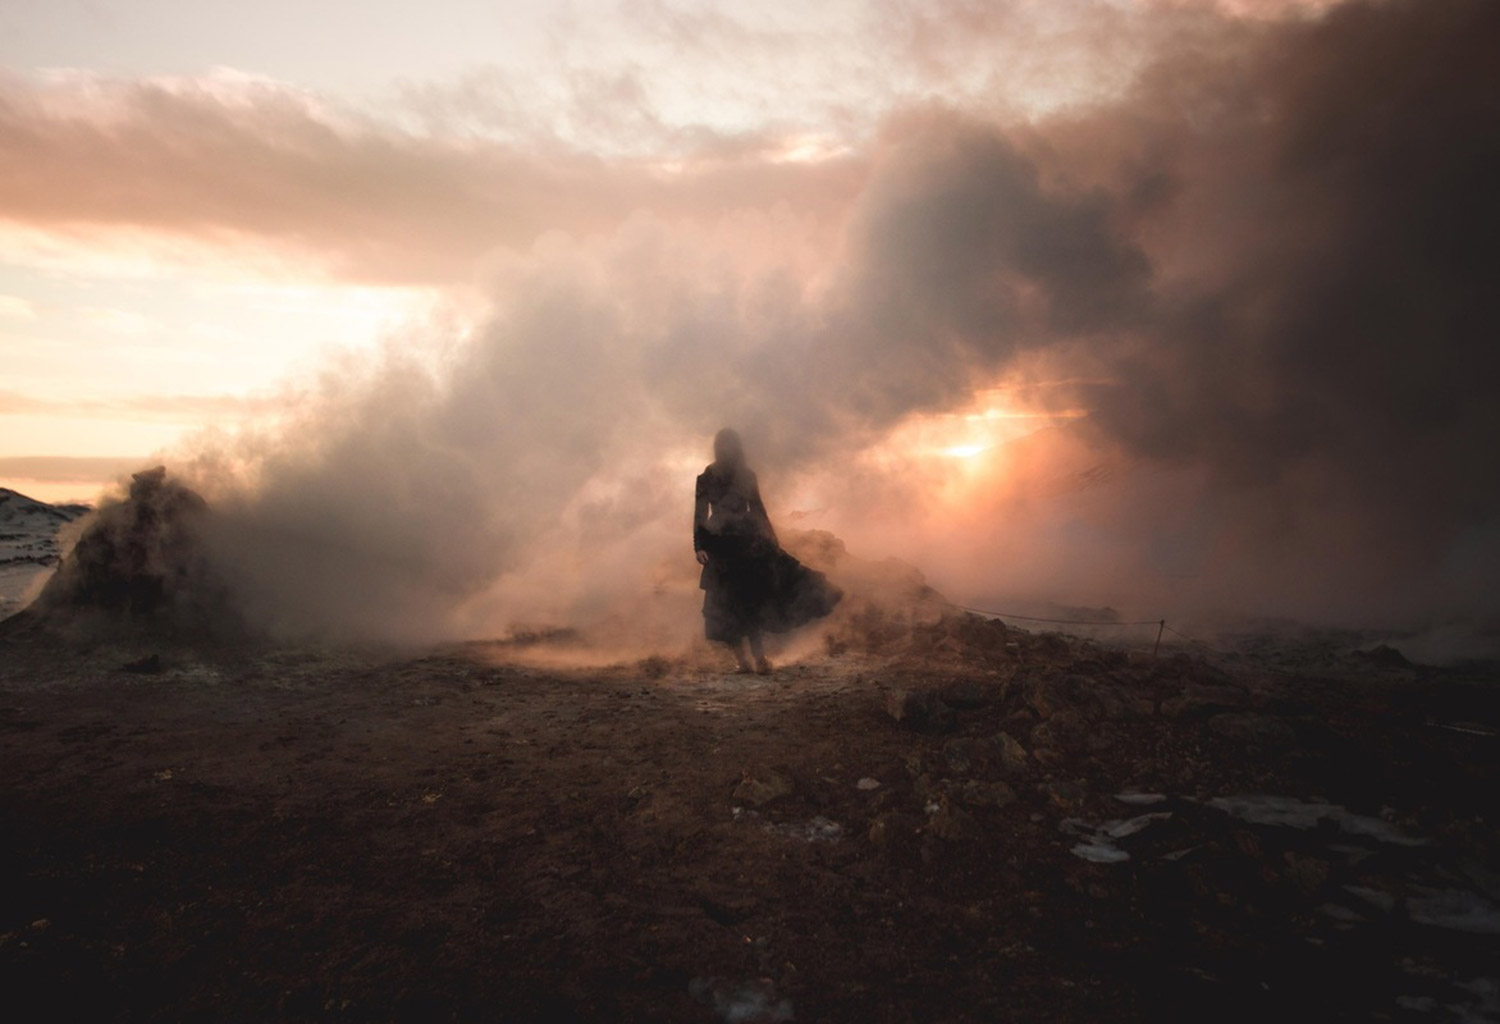 Amy Haselhurst, Broken Sundowns, woman in fiery fog, destruction